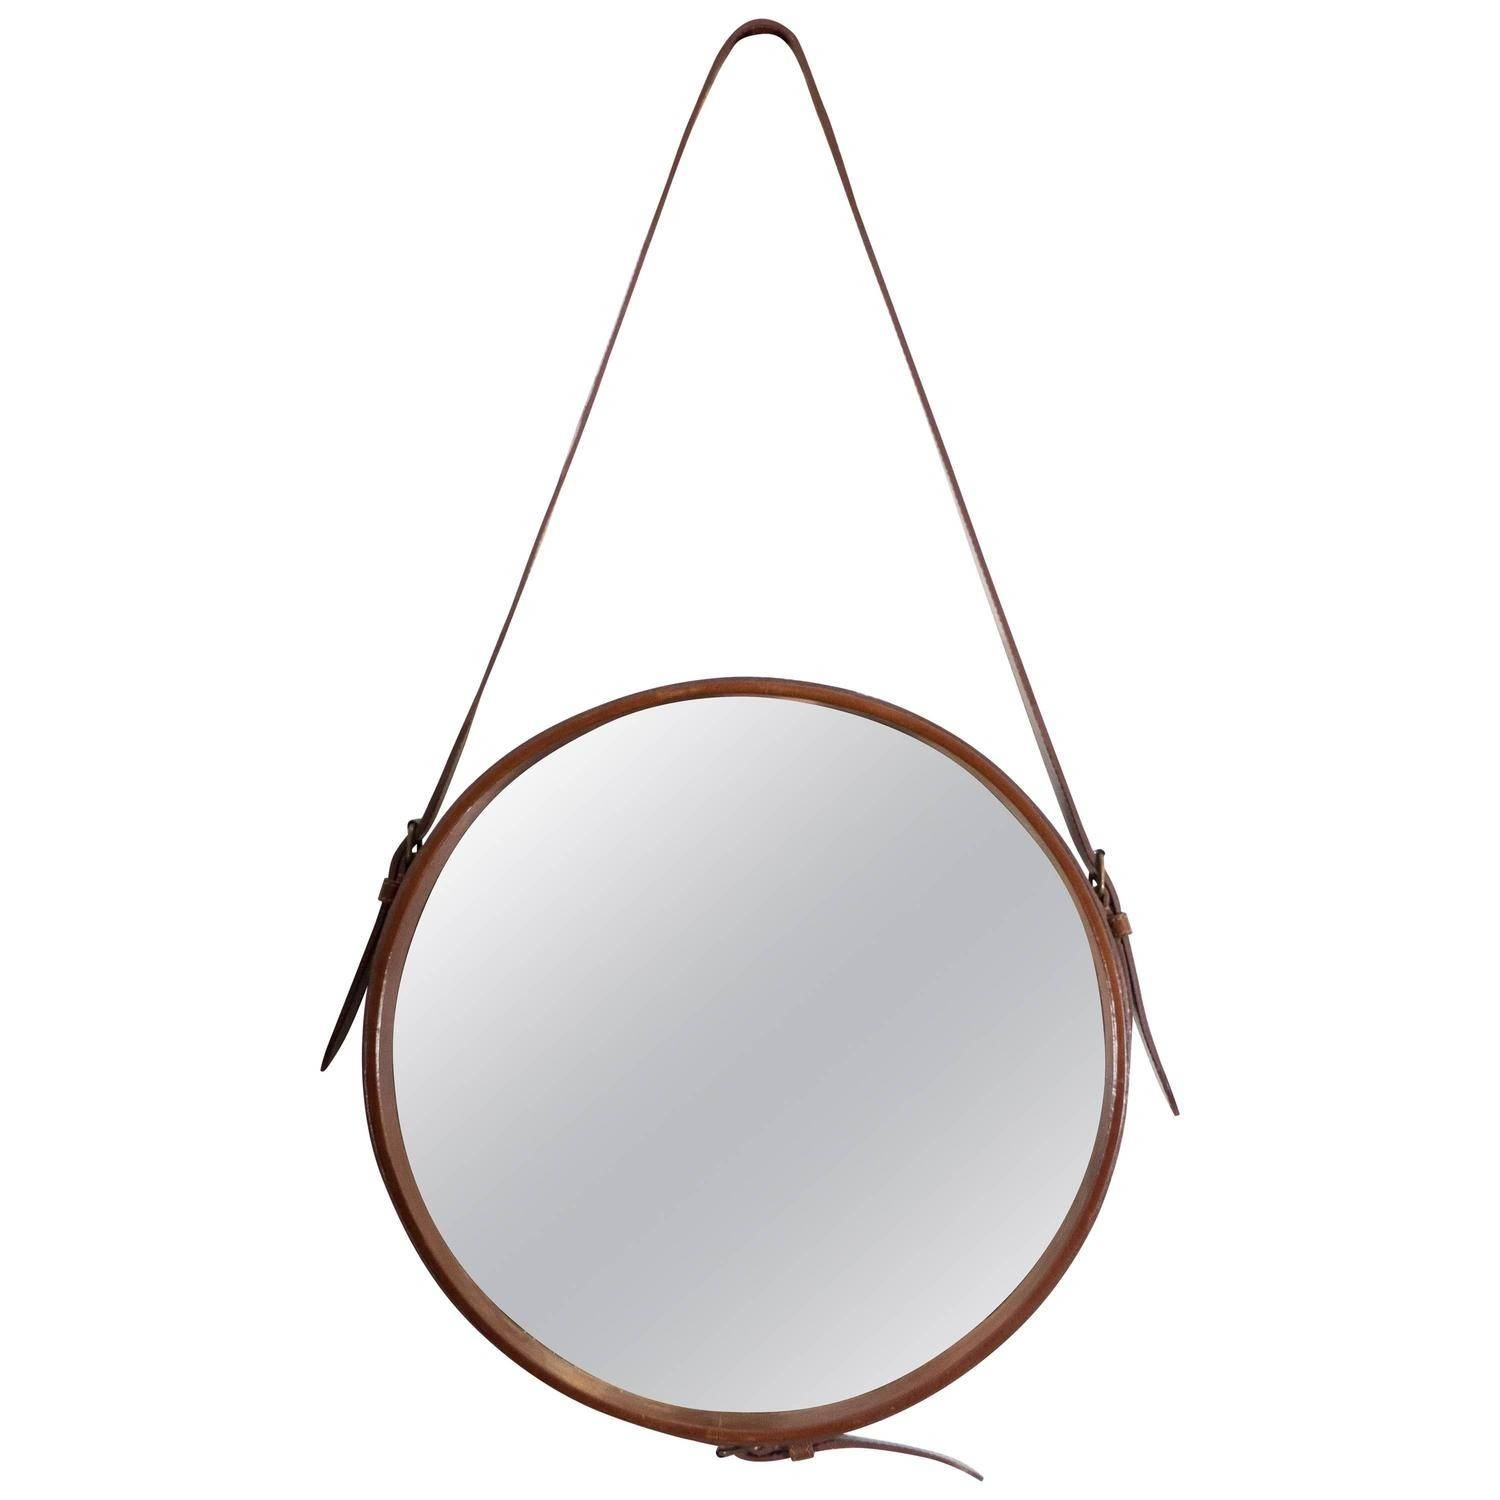 Adnet Round Wall Mirror With Brown Faux Leather Strap Nyshowplace For Round Leather Mirrors (View 9 of 15)